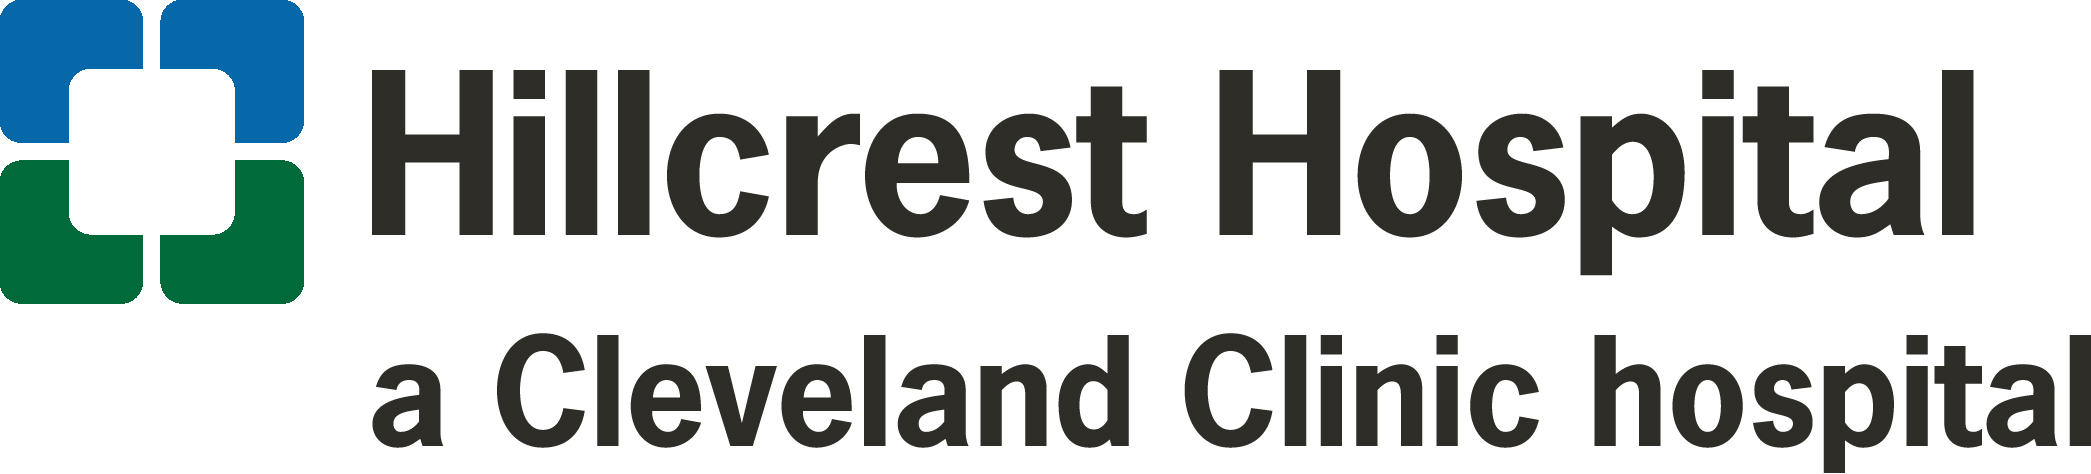 Cleveland Clinic Hillcrest Hospital